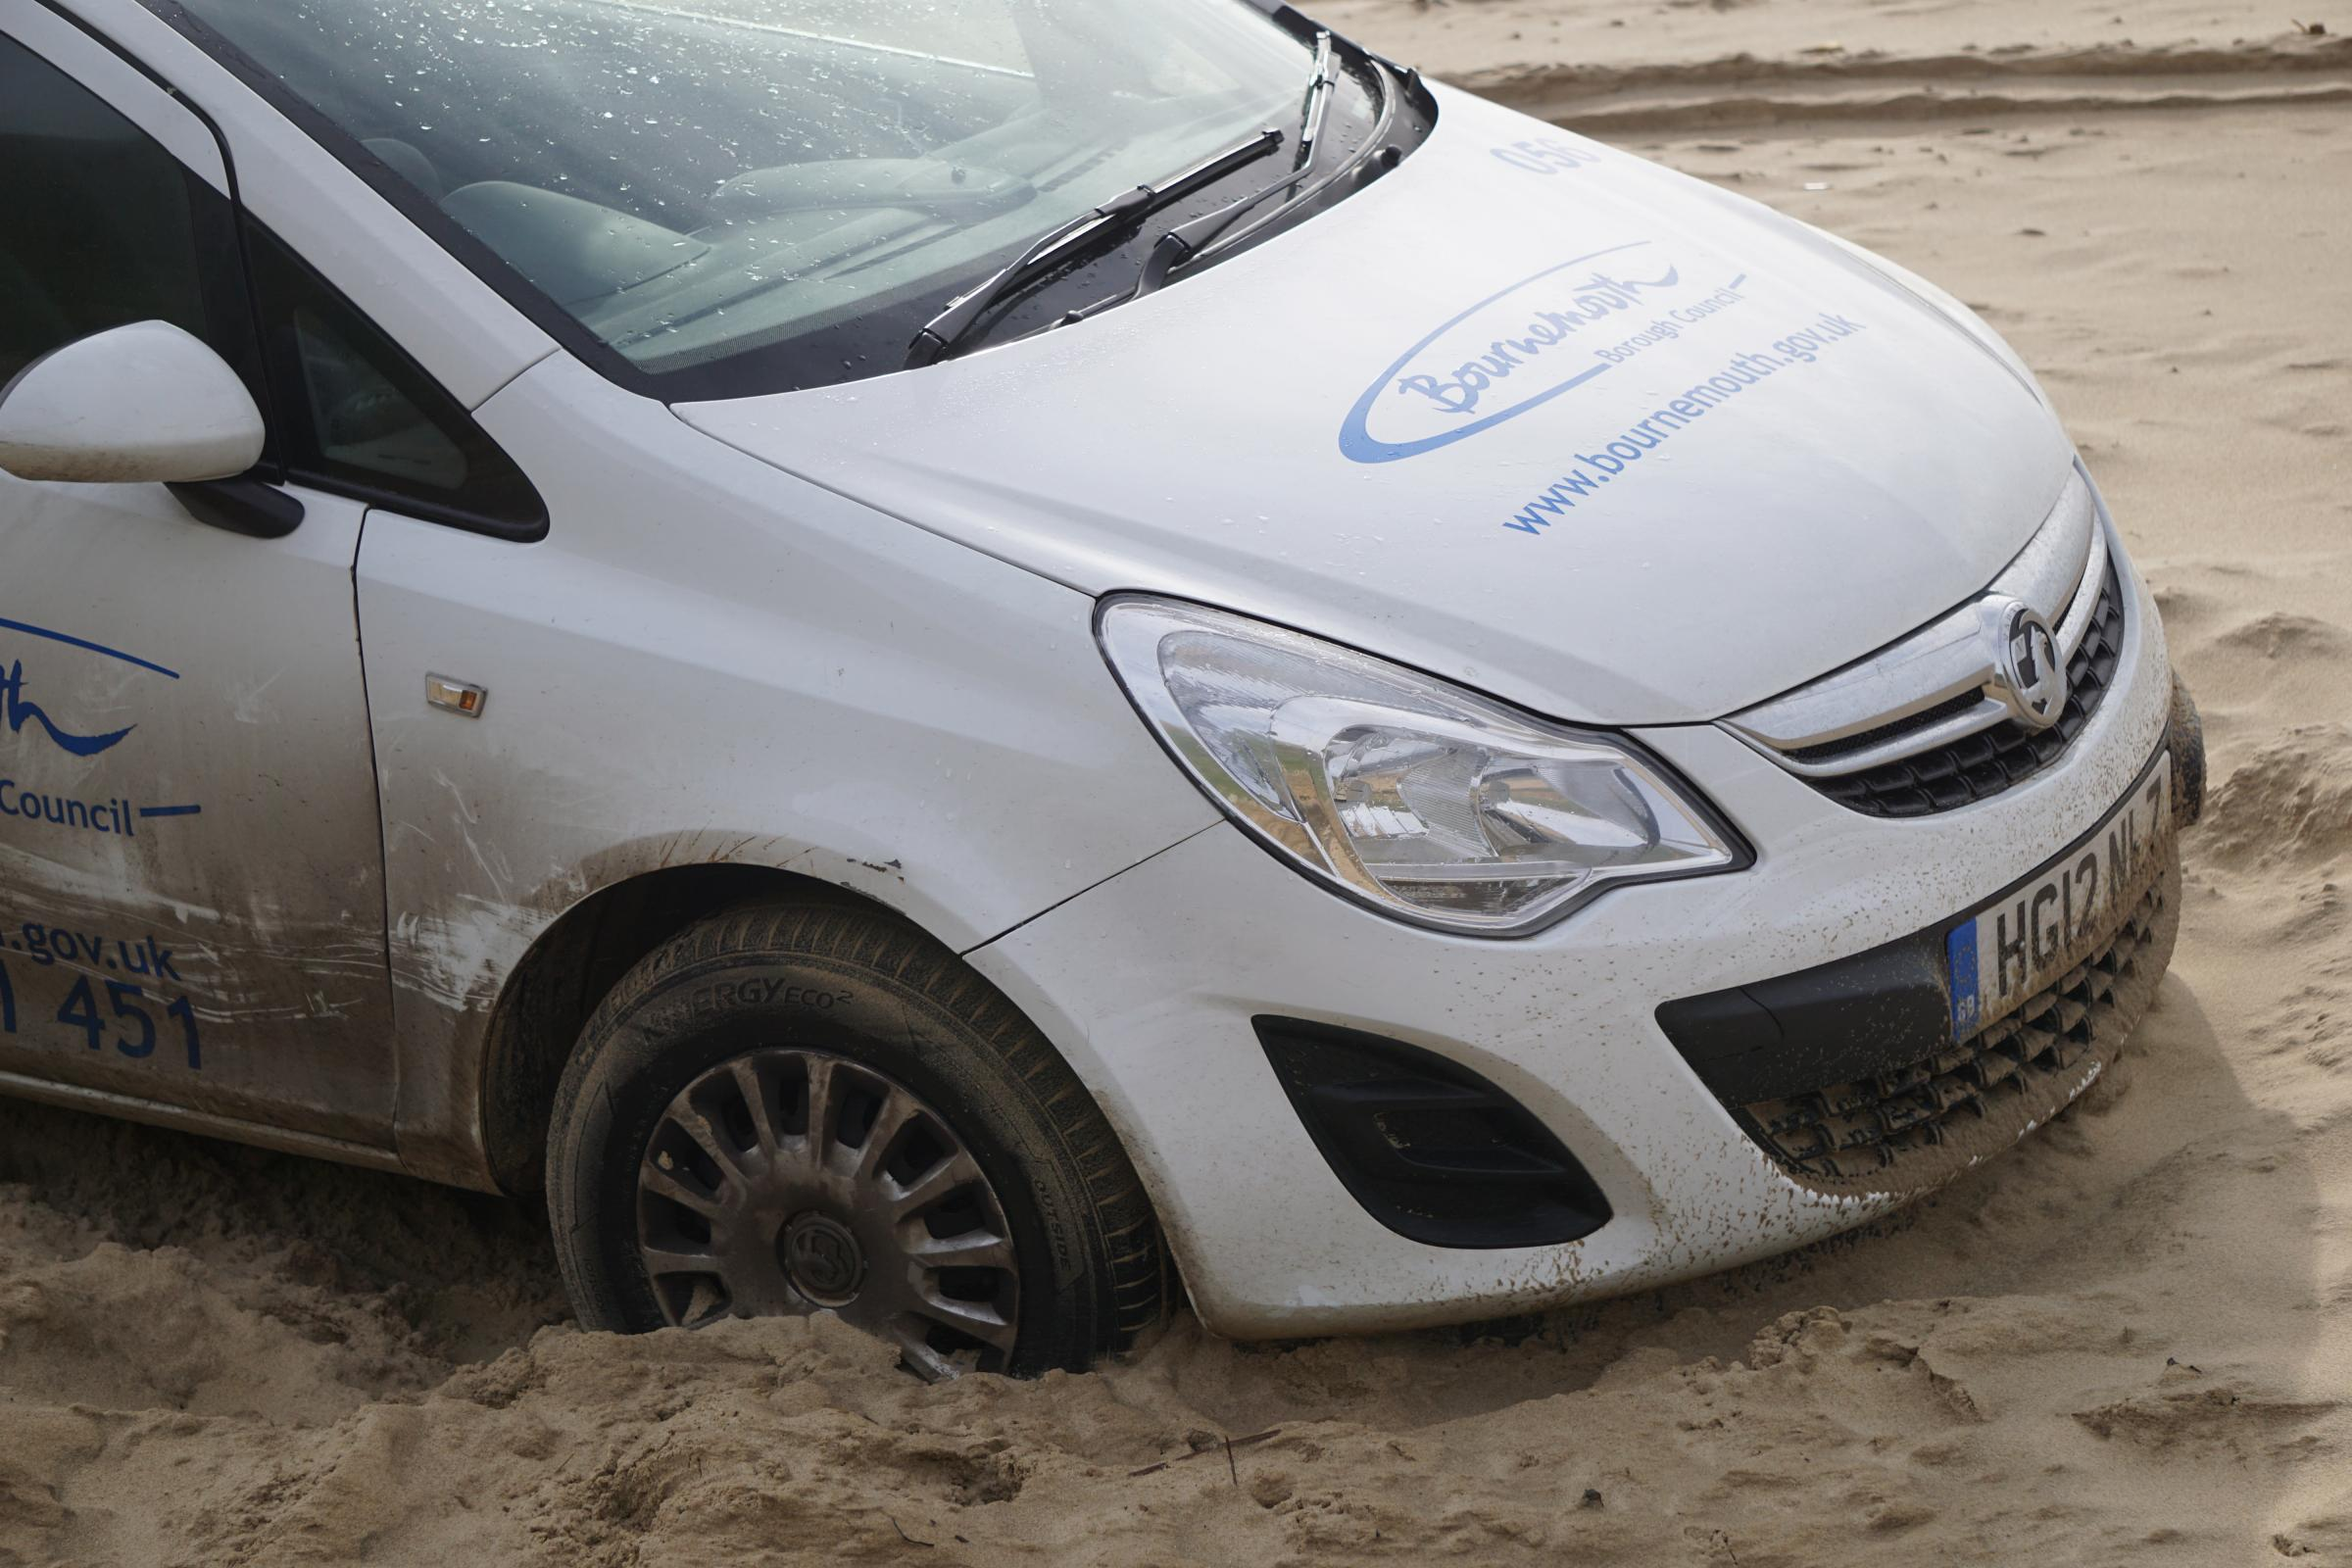 Council-owned Vauxhall Corsa caught in sand on Southbourne Beach